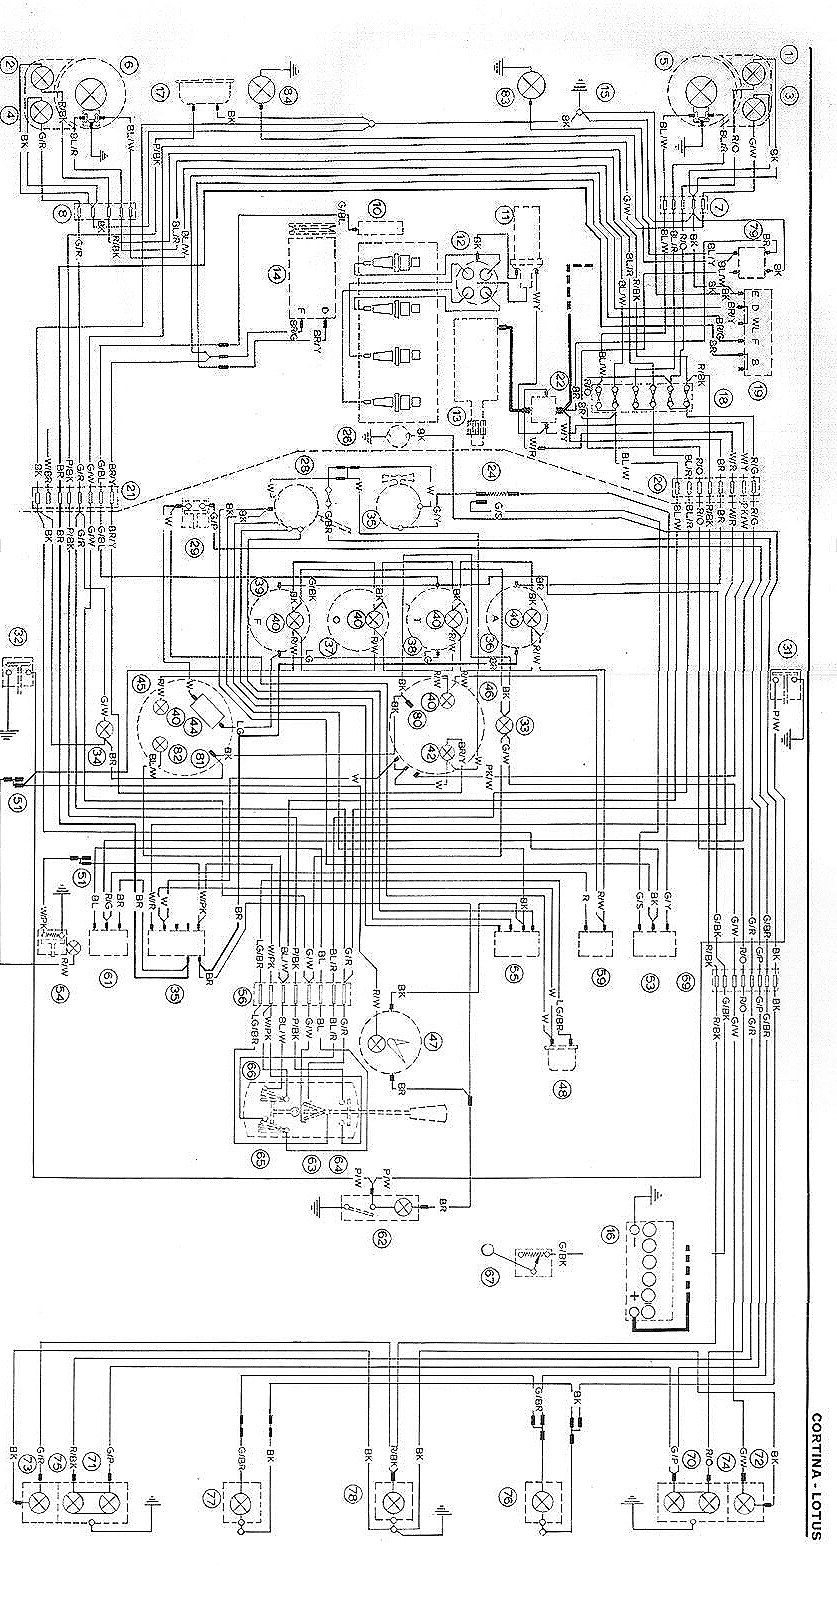 lhdmk2 lotus cortina wiring diagrams ford focus mk1 wiring diagram pdf at edmiracle.co